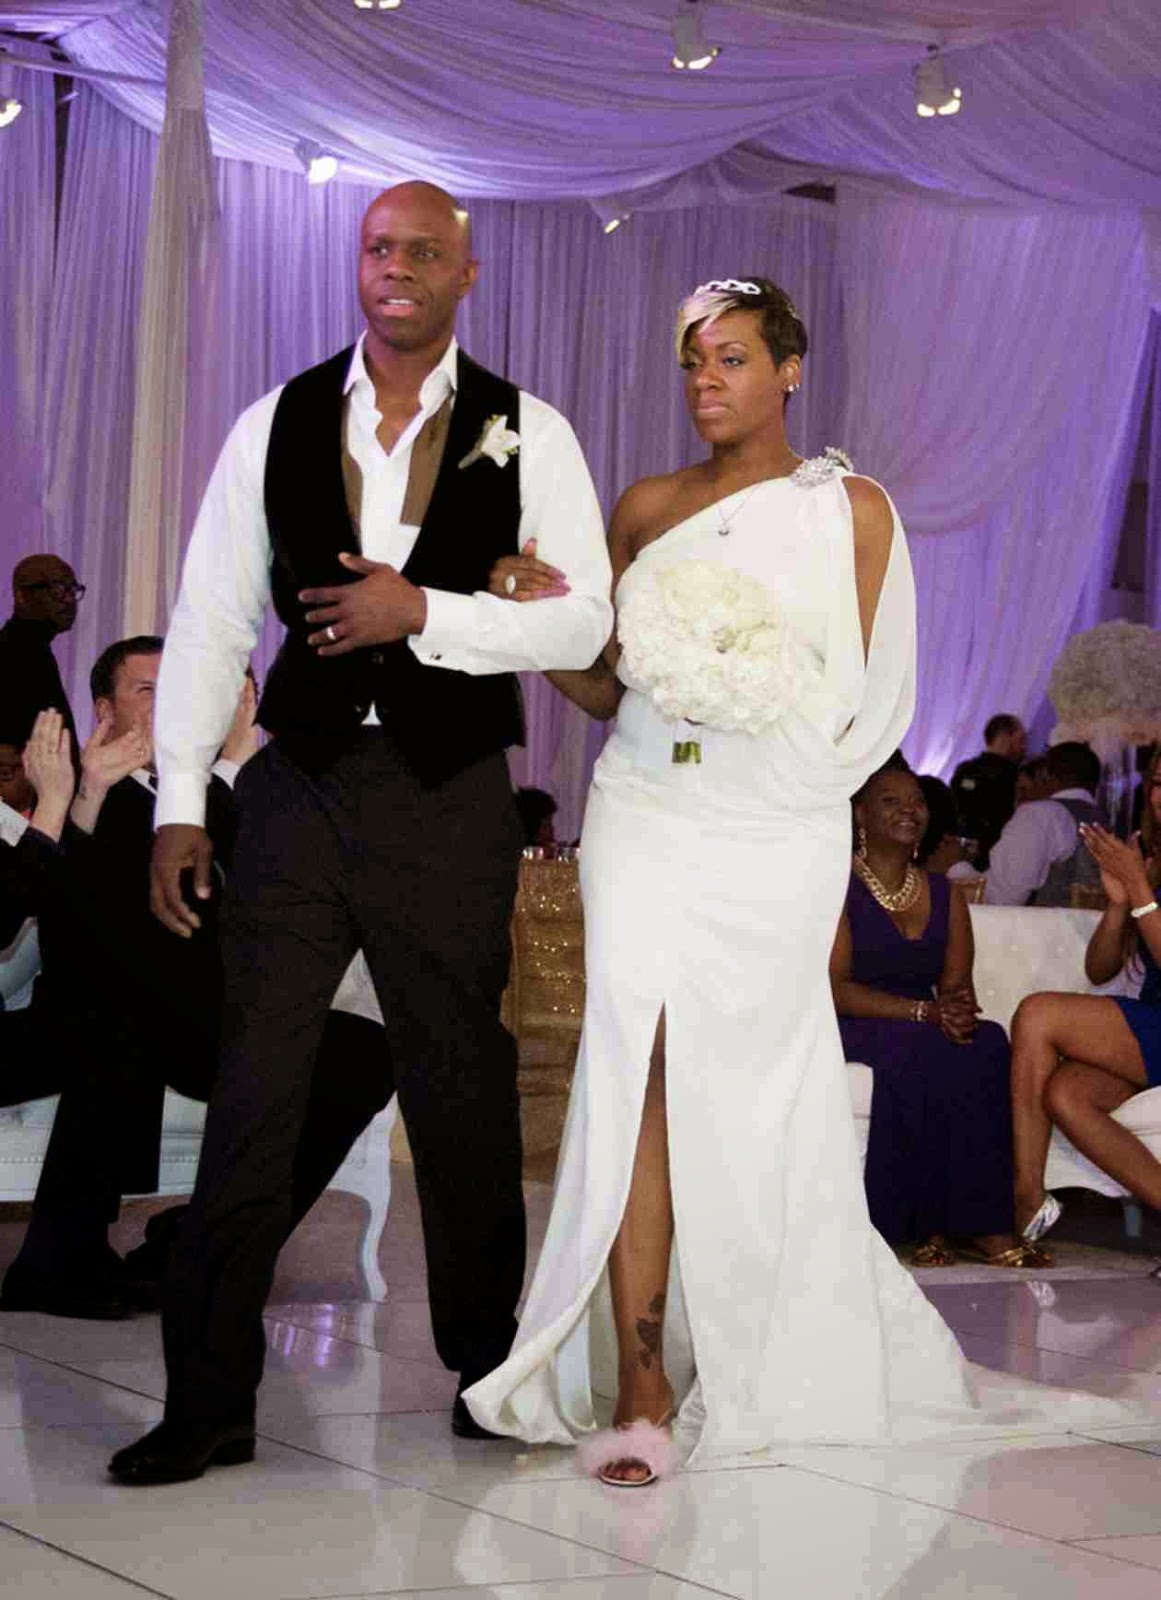 SEE MORE PHOTOS of Real Housewives of Atlanta\'s Kandi Burruss\' Wedding